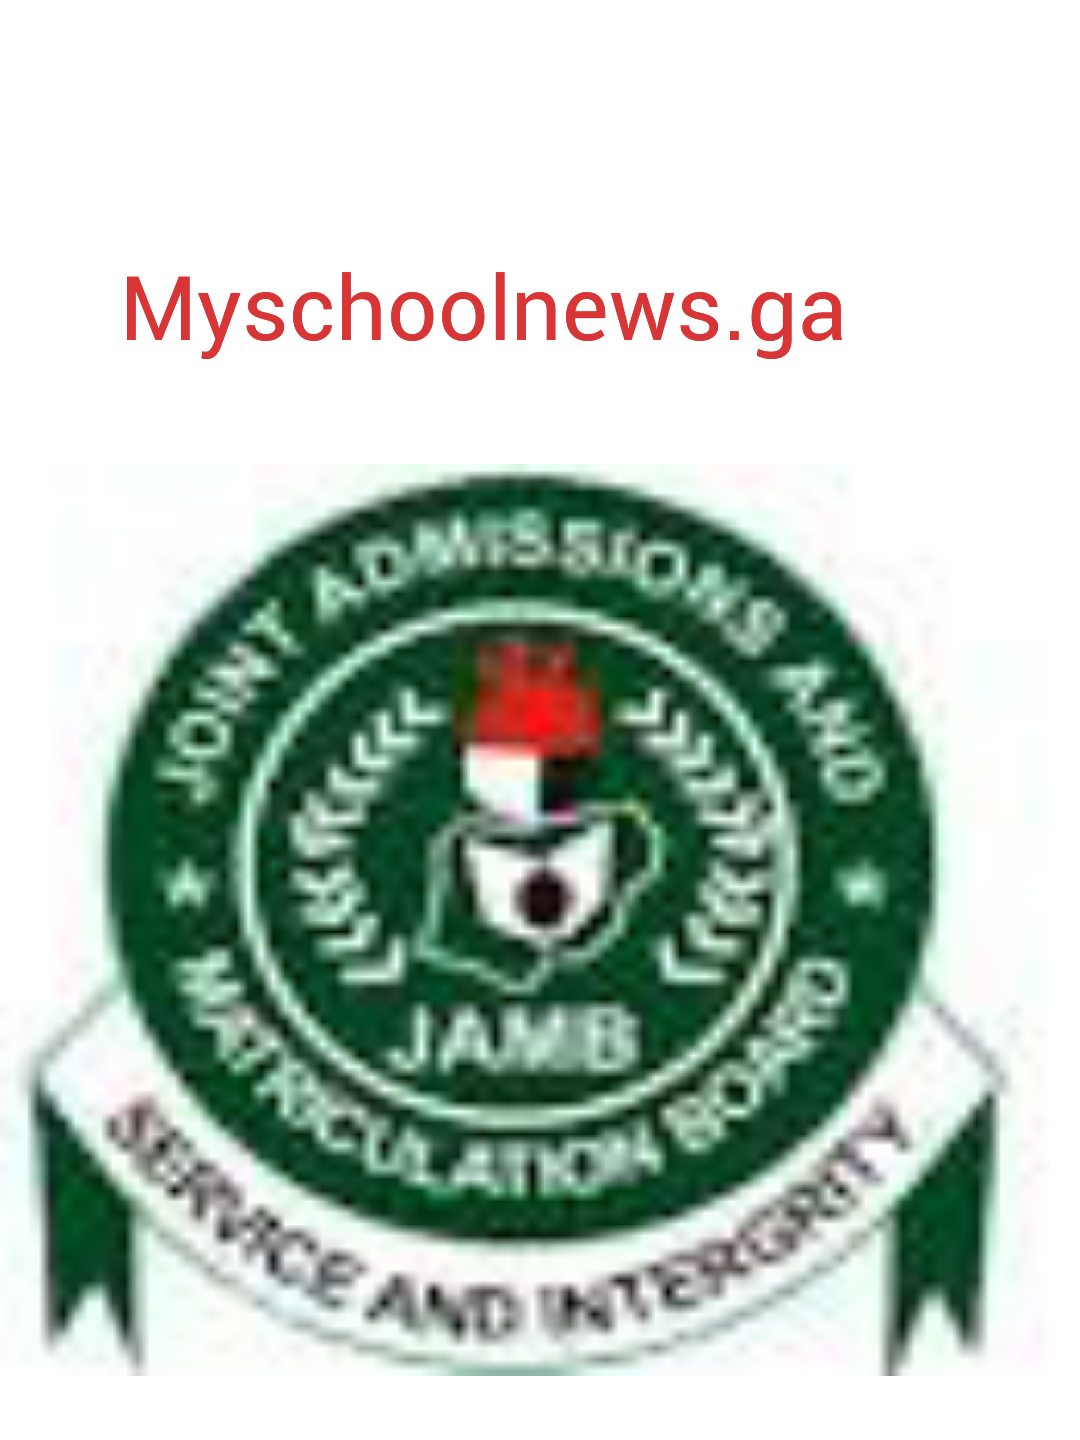 Jamb has announced the registration date for 2018 examination